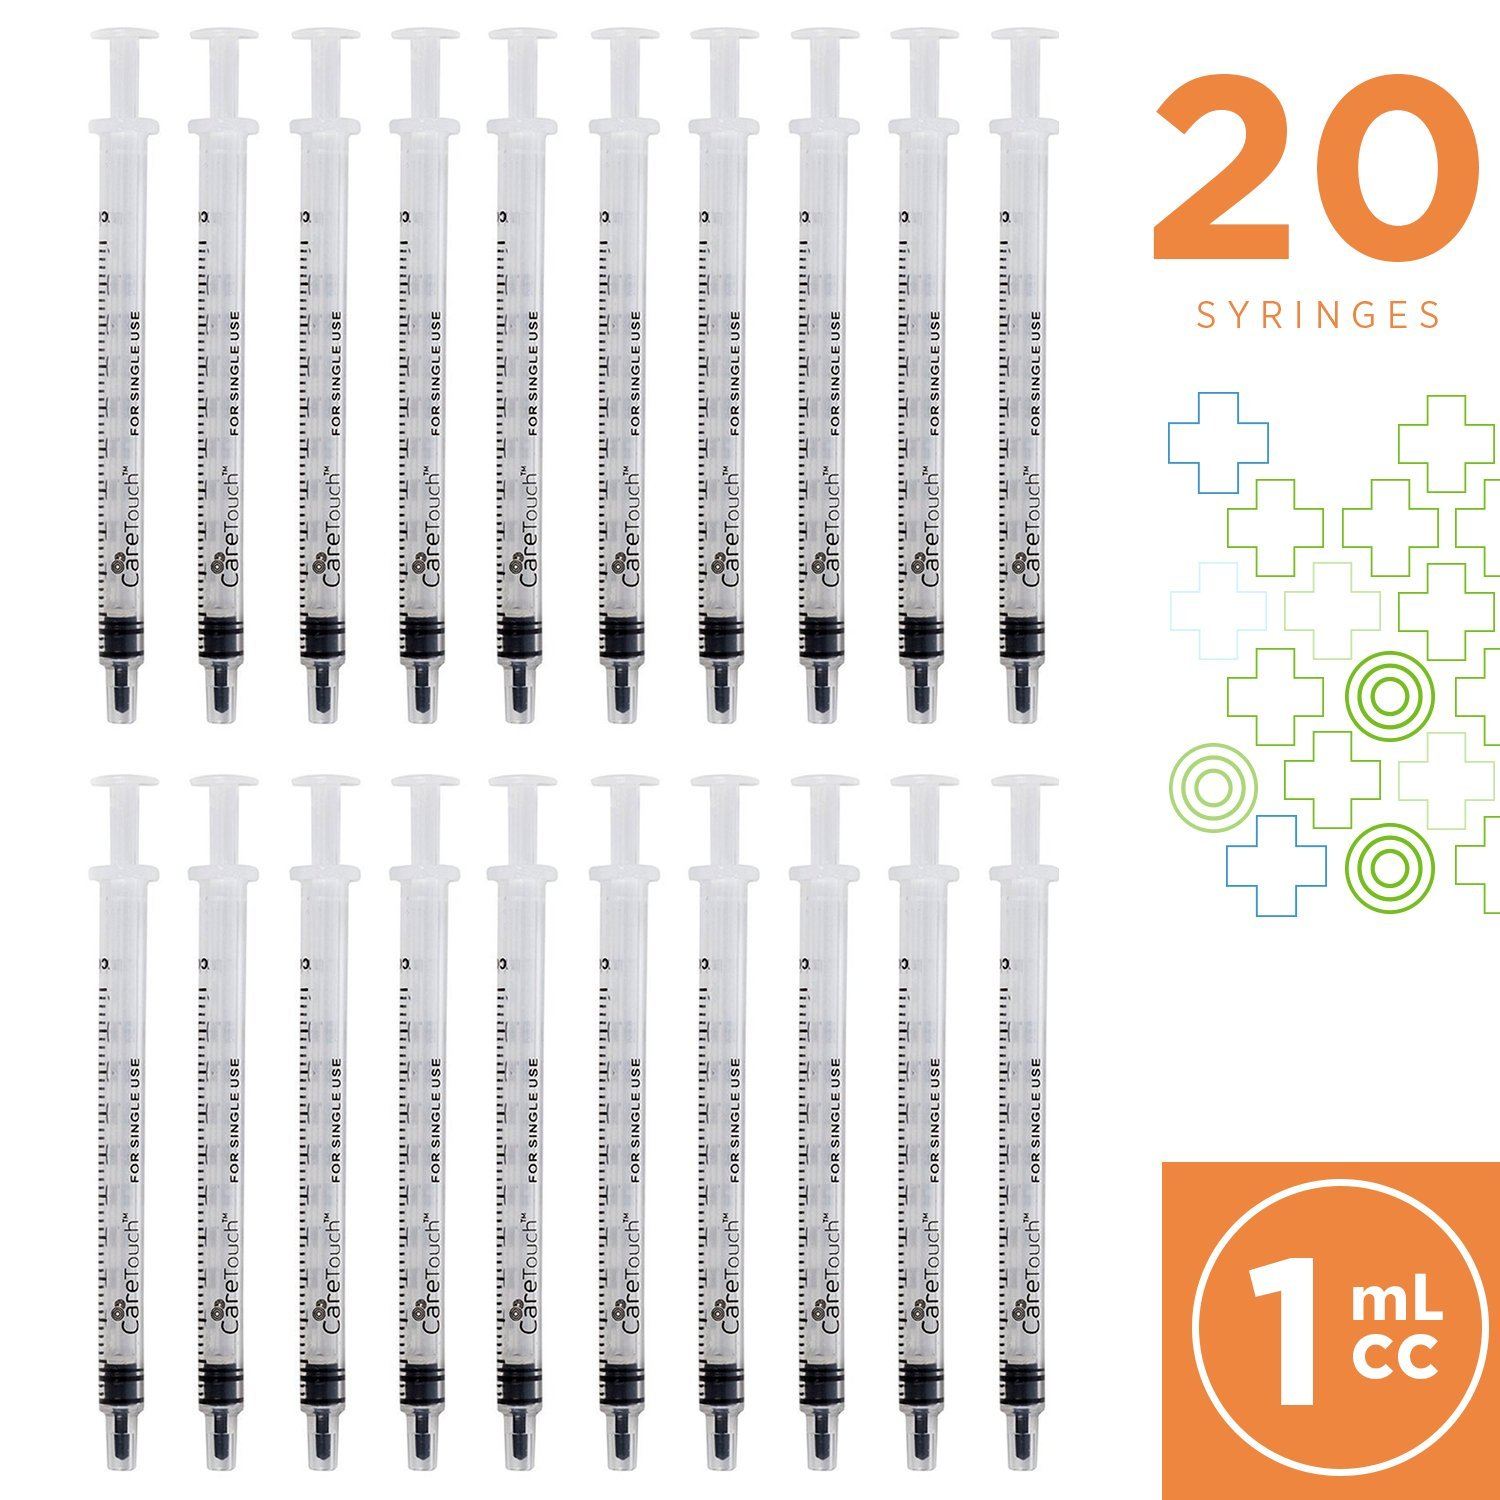 1ml Syringe with Luer Slip Tip - 20 Sterile Syringes by Care Touch – No Needle, Great for Dispensing Oral Medicine and Home Care